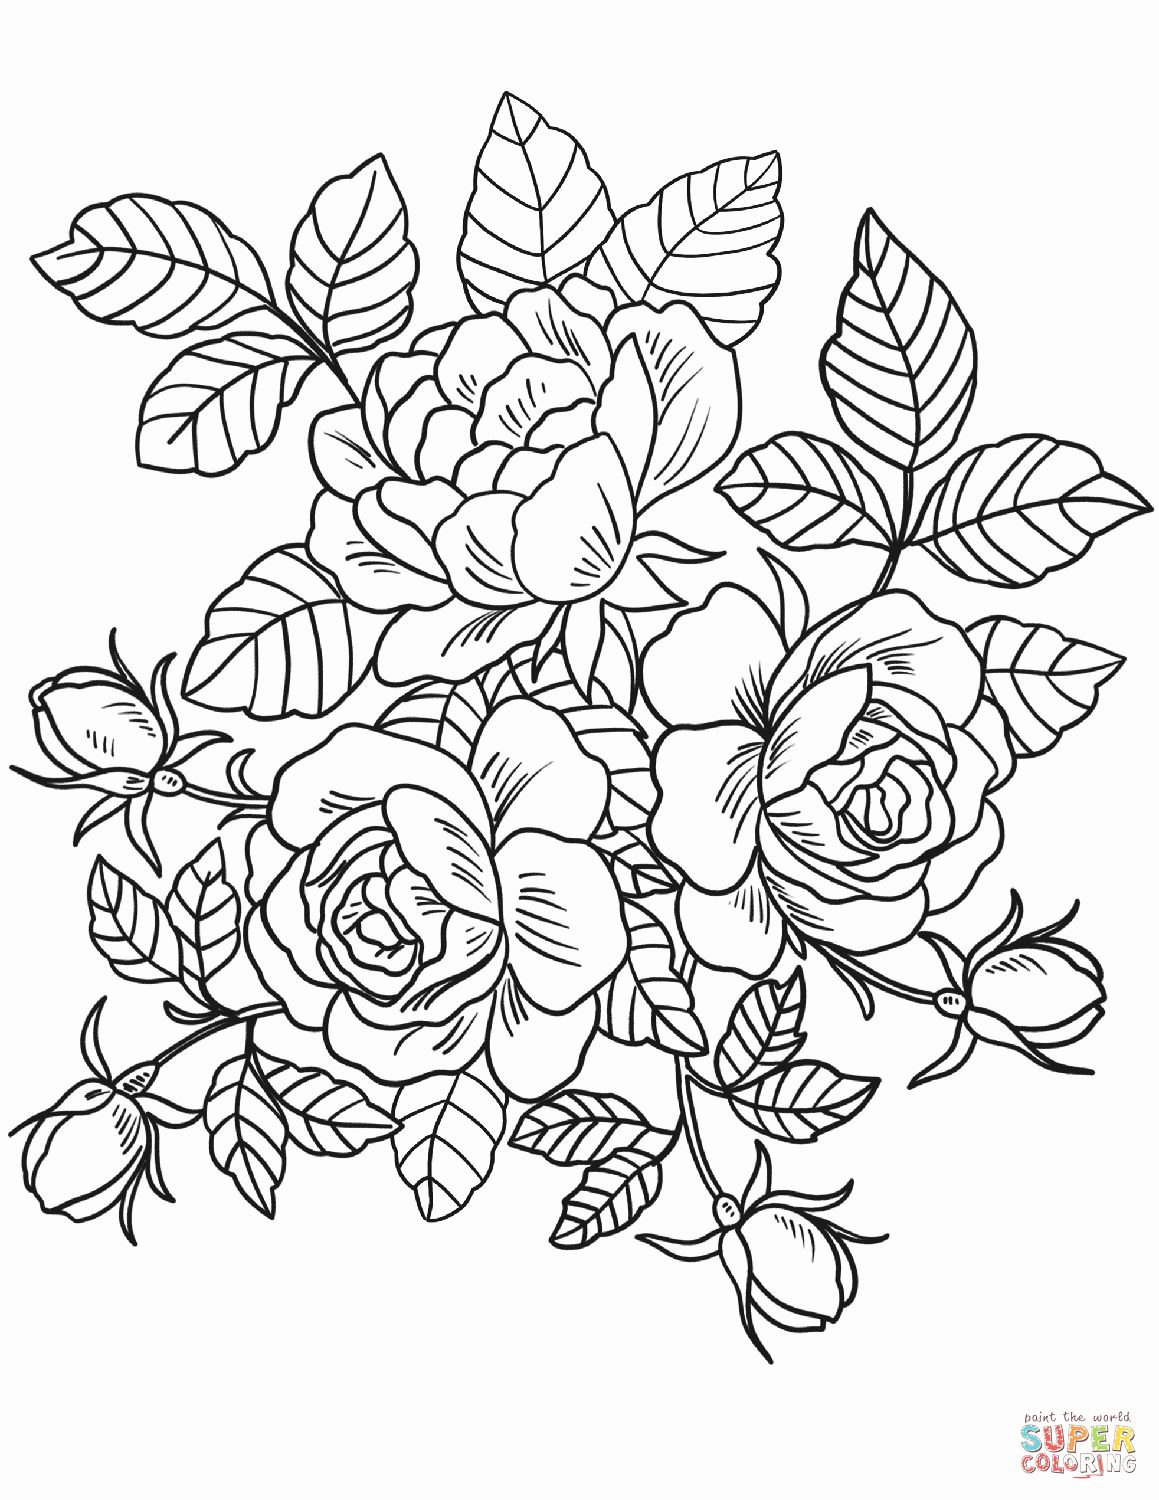 Flower Coloring Pages Adults Unique Roses Flowers Coloring Page Detailed Coloring Pages Rose Coloring Pages Printable Flower Coloring Pages